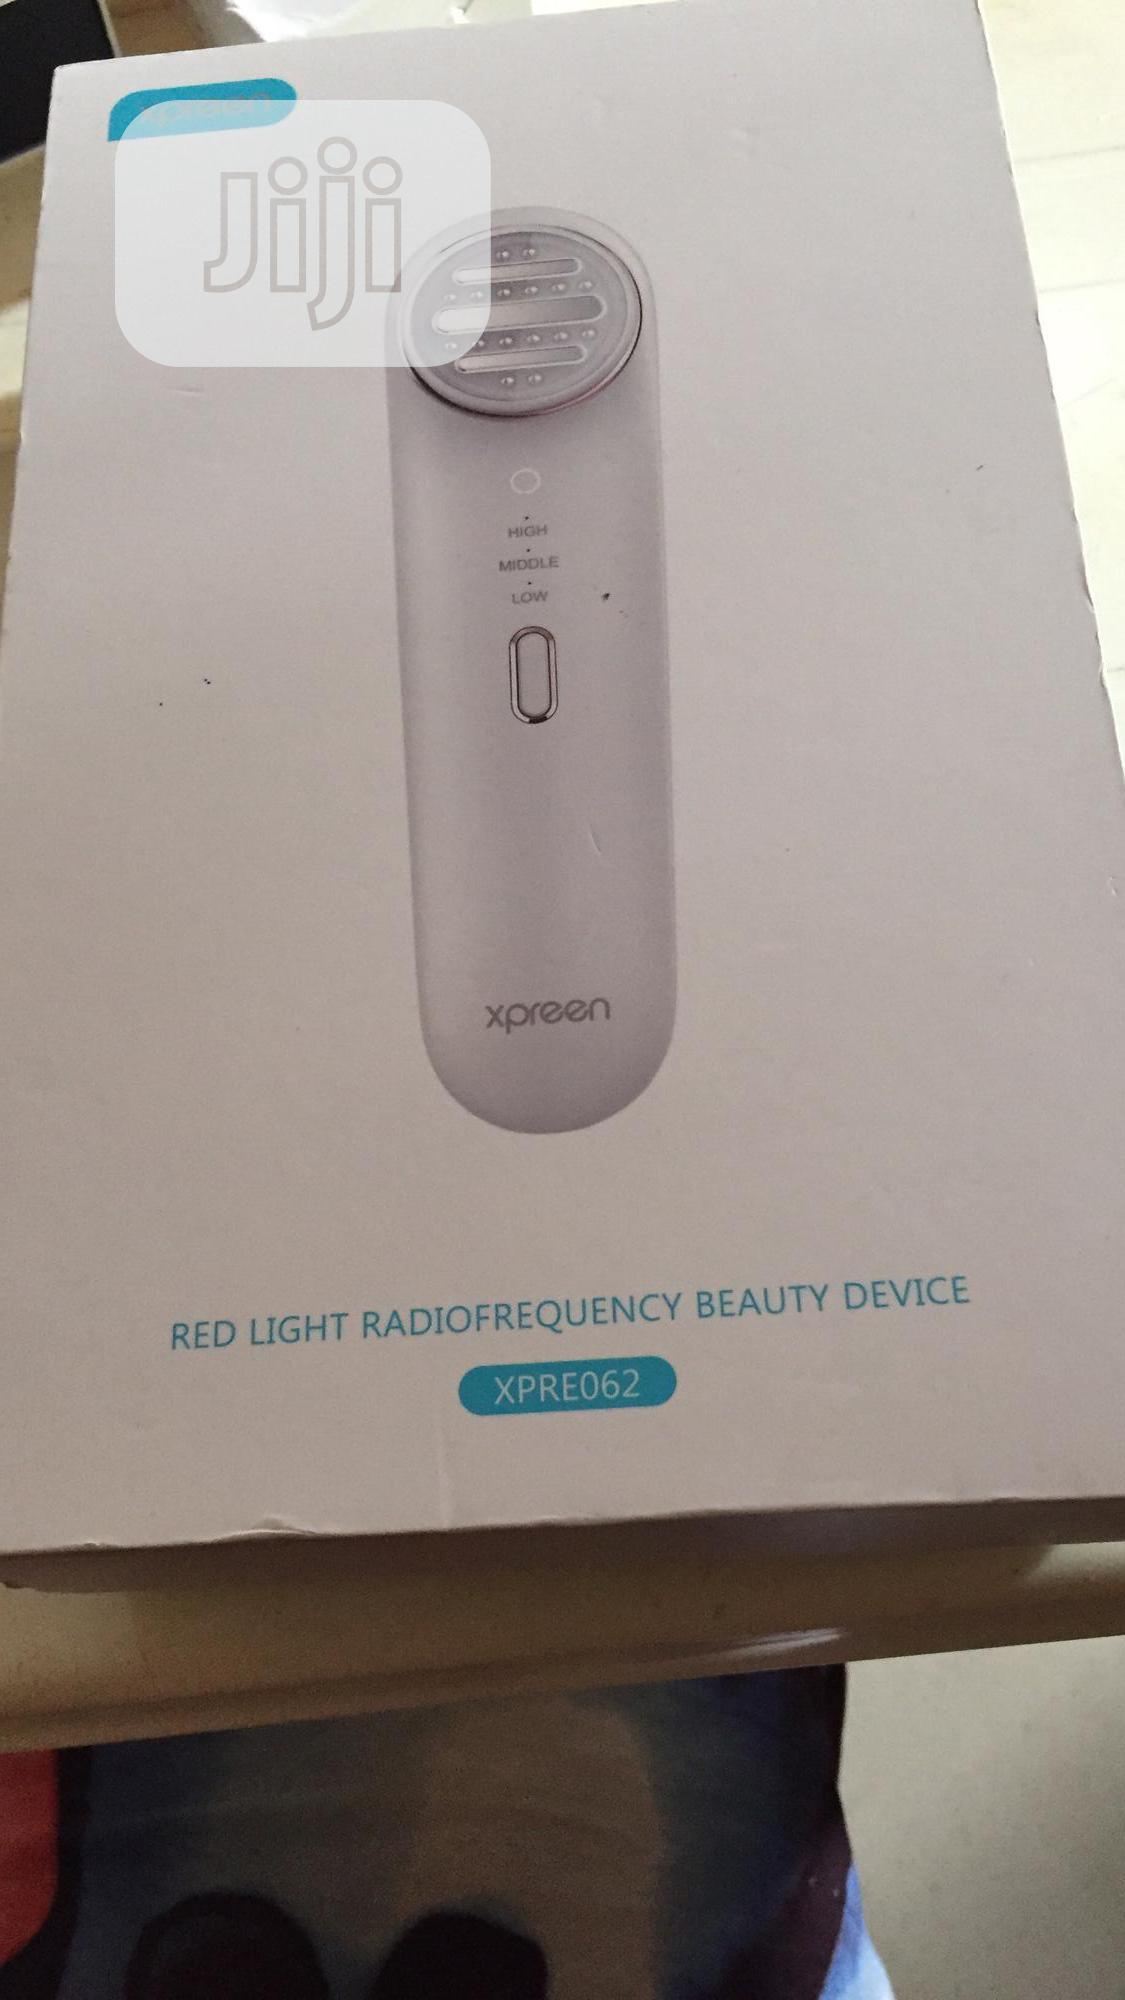 Red Light Rediofrequency Beauty Device